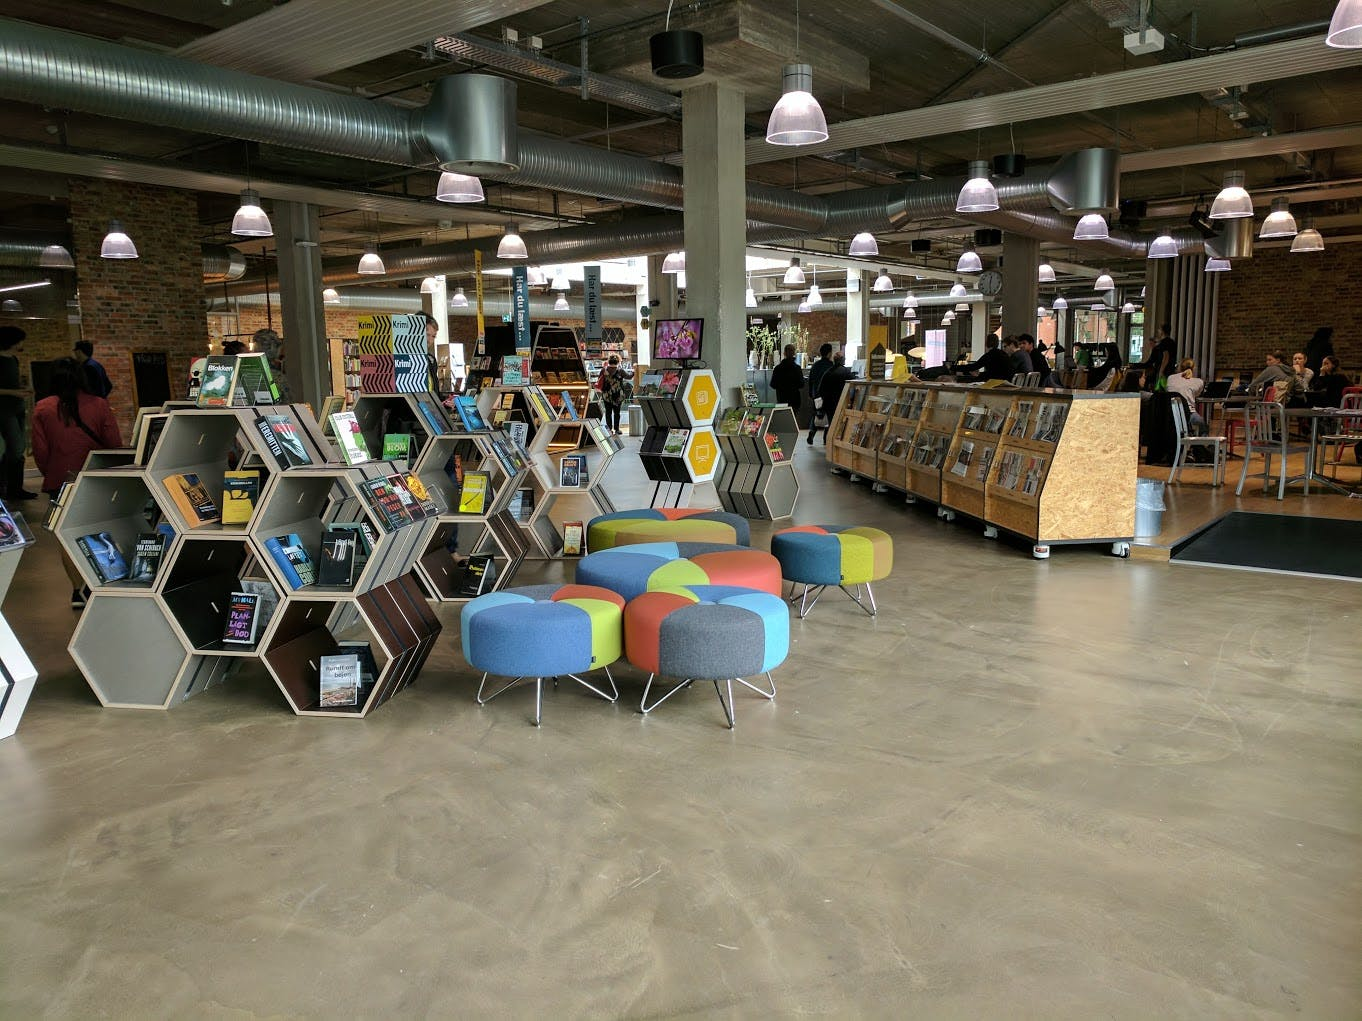 <p><em>Herning Bibliotekerne, once a grocery store, has been transformed into a vibrant multiuse space. It&#39;s like a second living room for community members, but with the invaluable added resource of a knowledgeable library staff. Photo: Julie Oborny</em></p>